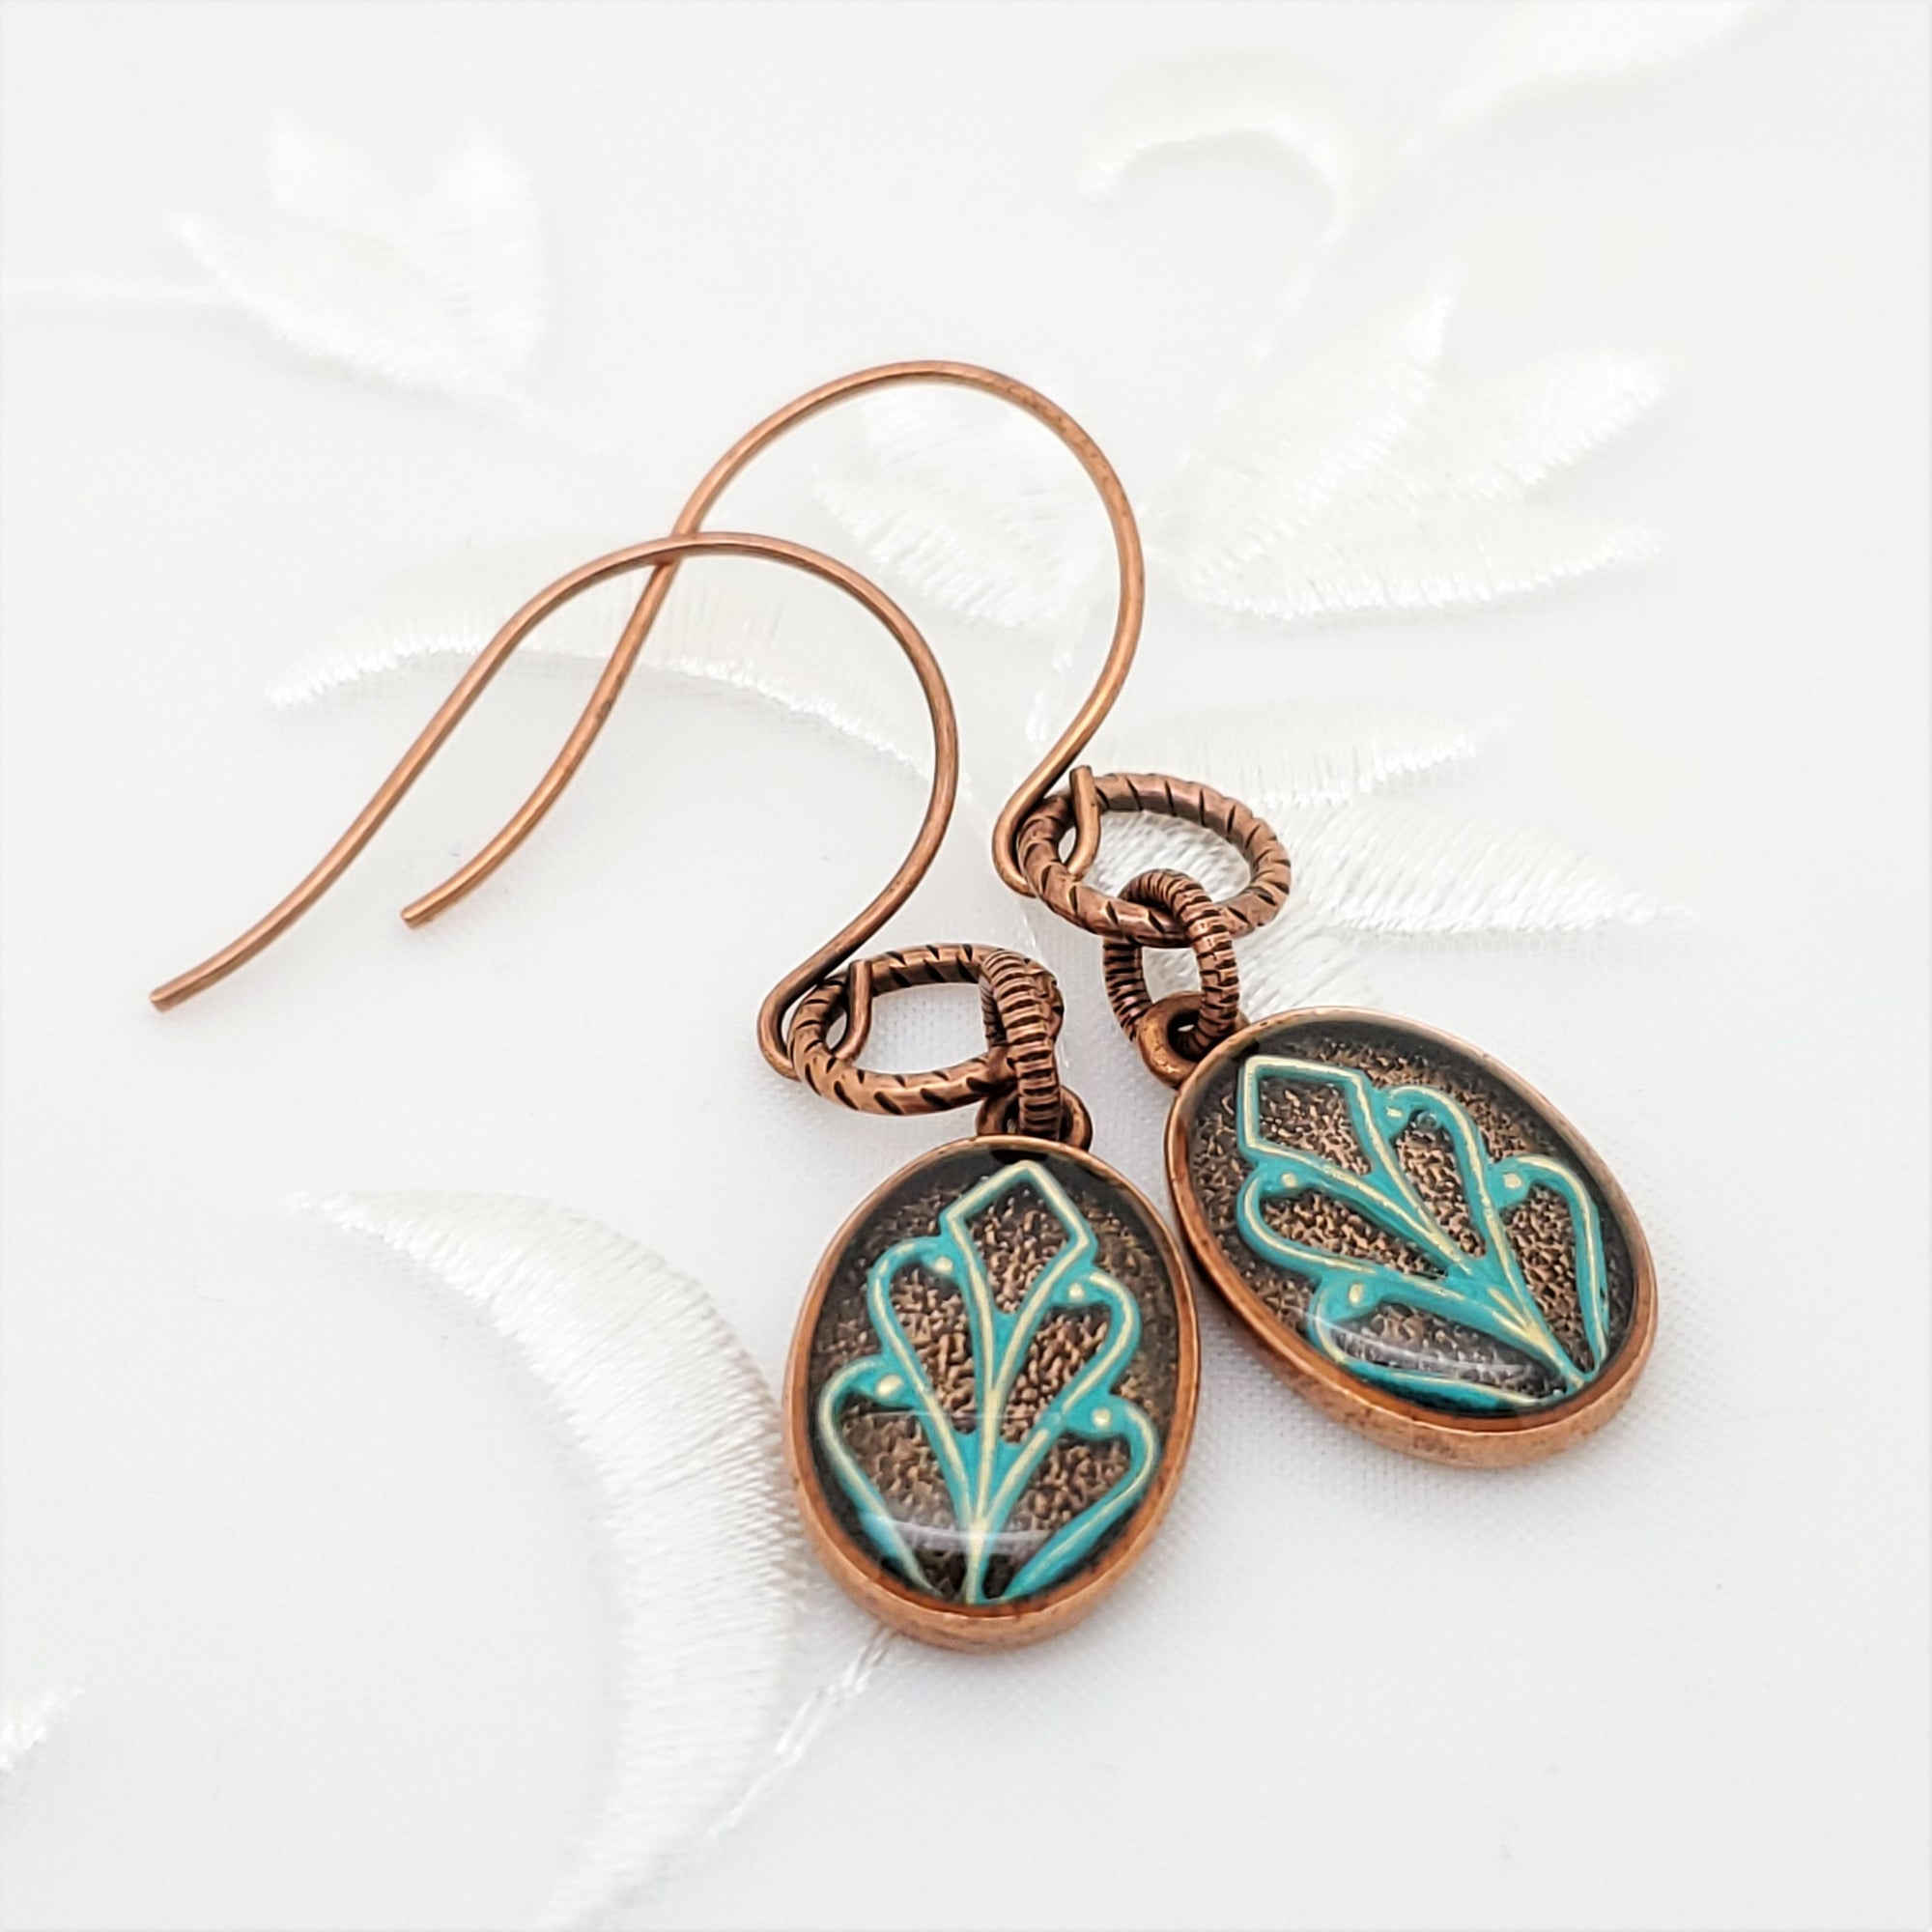 Antique Copper Oval Earrings with Patina Filigree